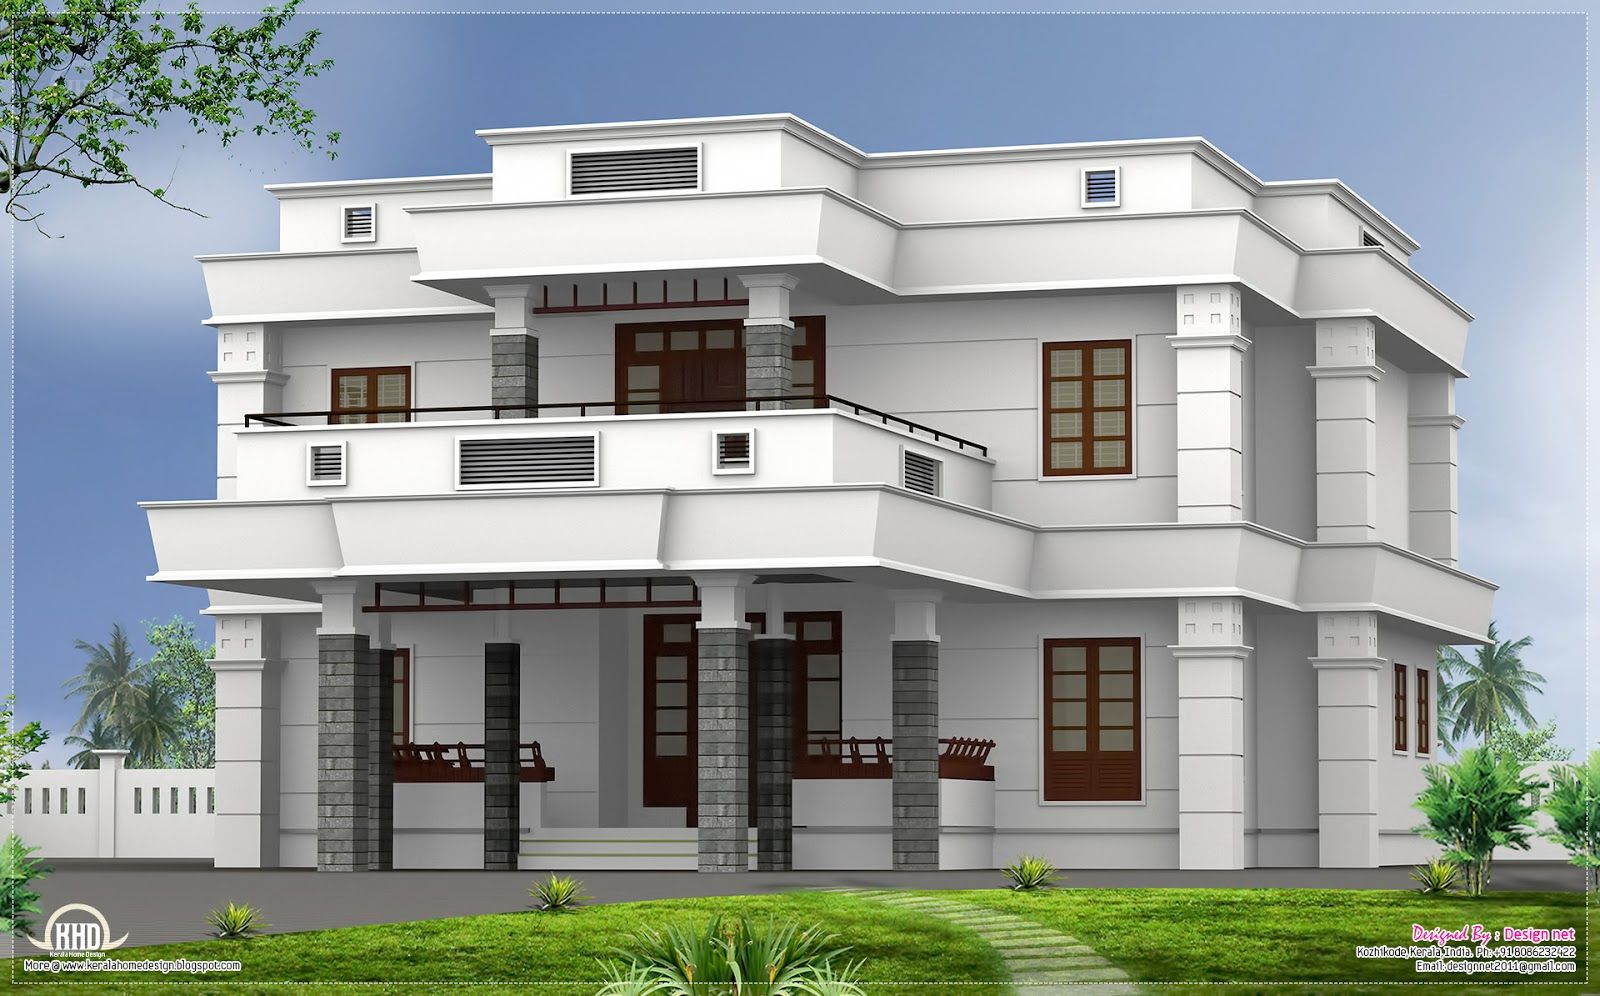 Flat roof homes designs bhk modern flat roof house for Kerala home designs contemporary